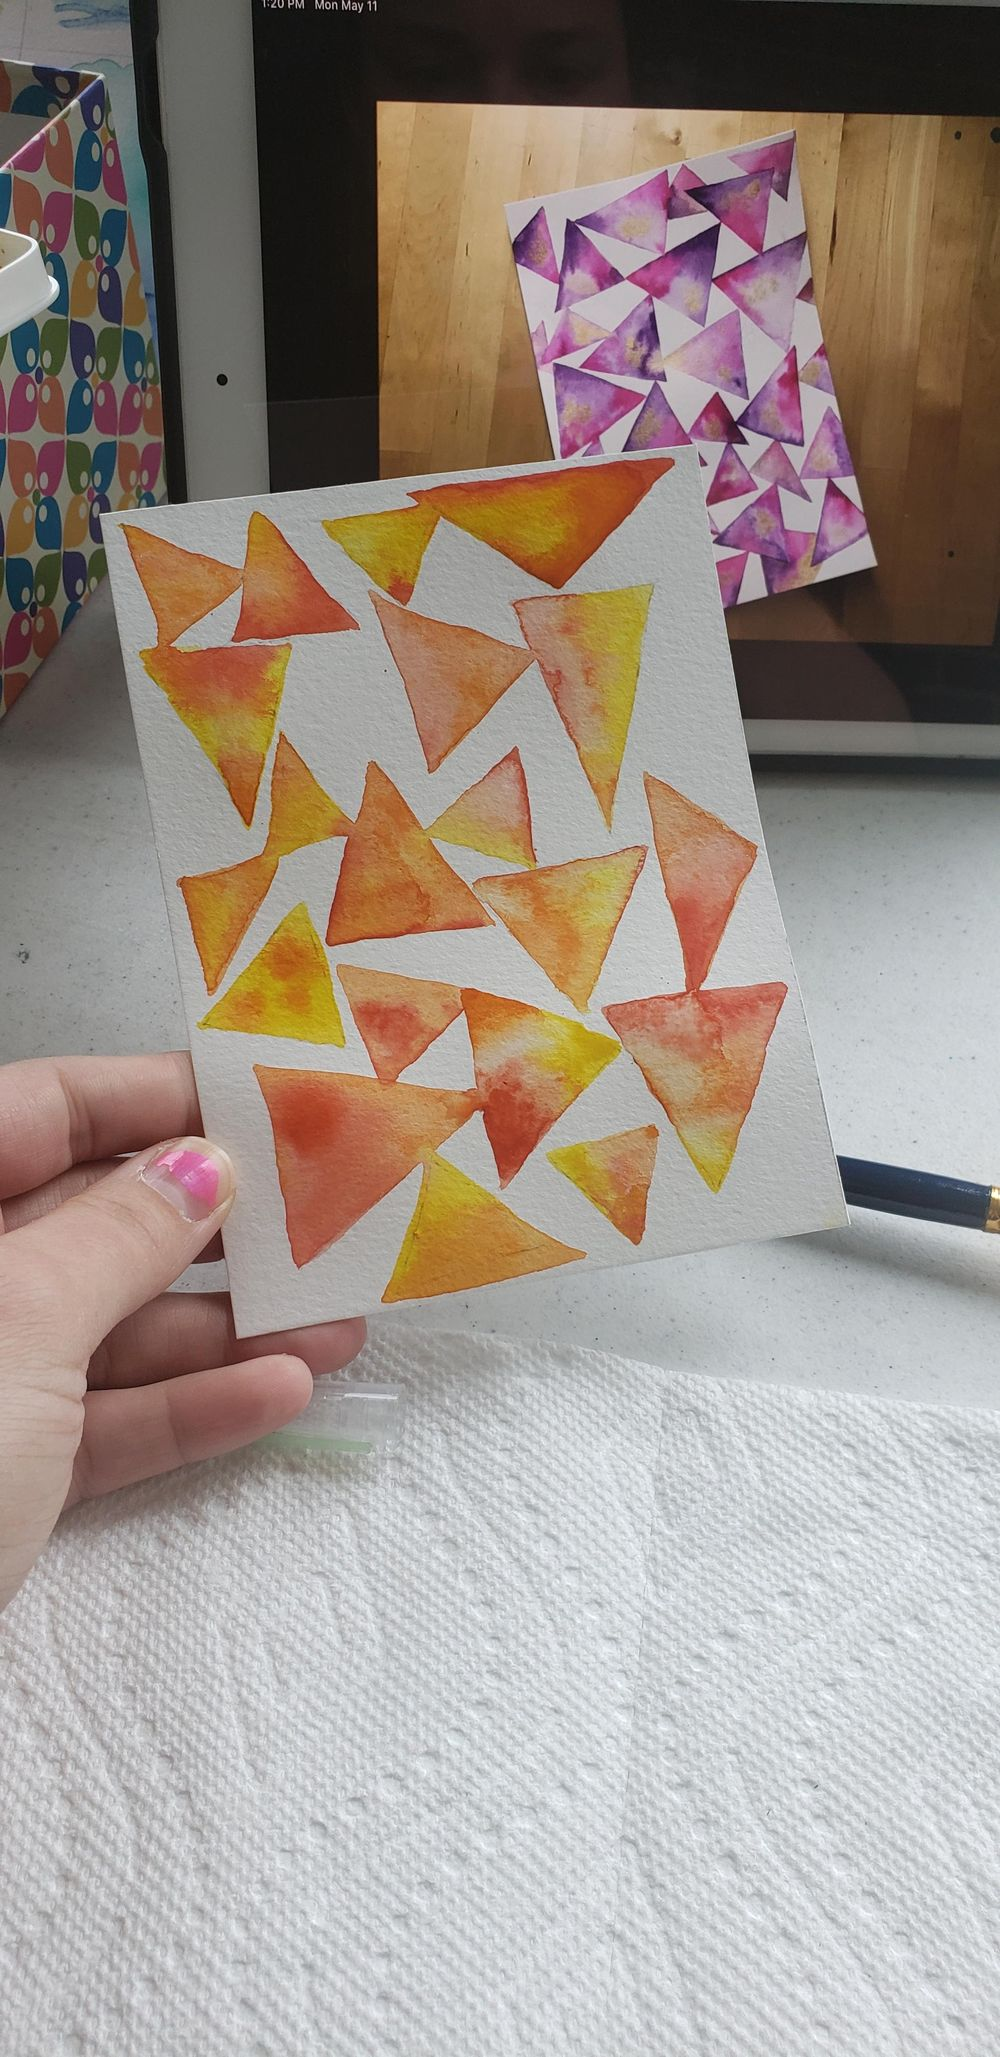 Watercolor backgrounds - image 1 - student project